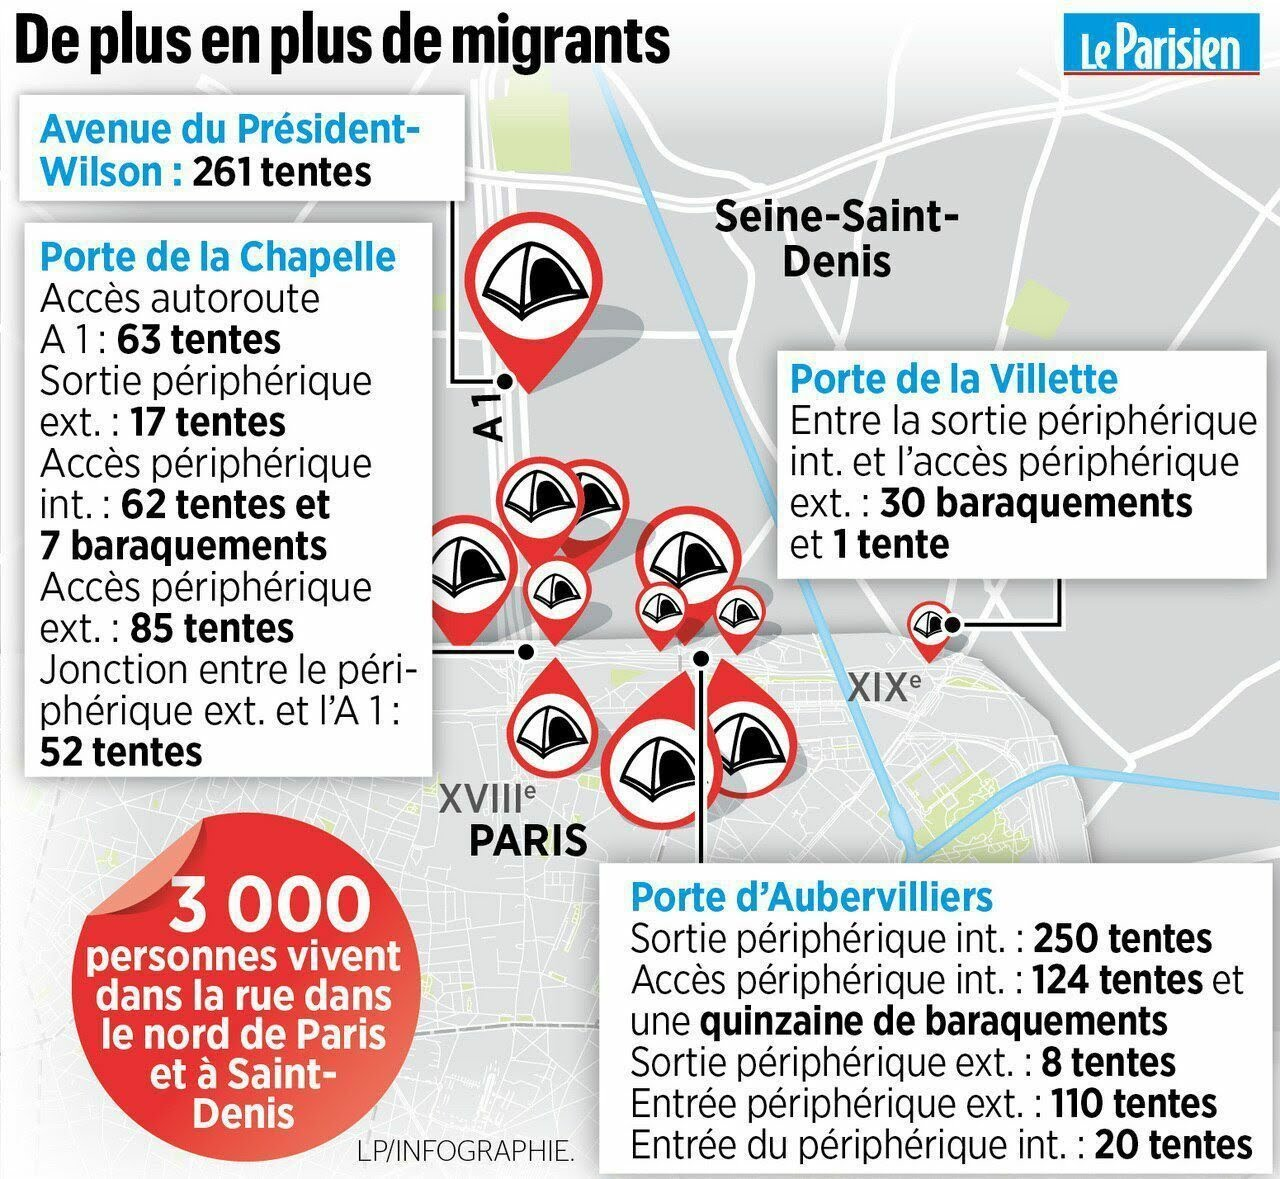 L'évacuation des camps de migrants à Paris et Saint-Denis en 10 photos